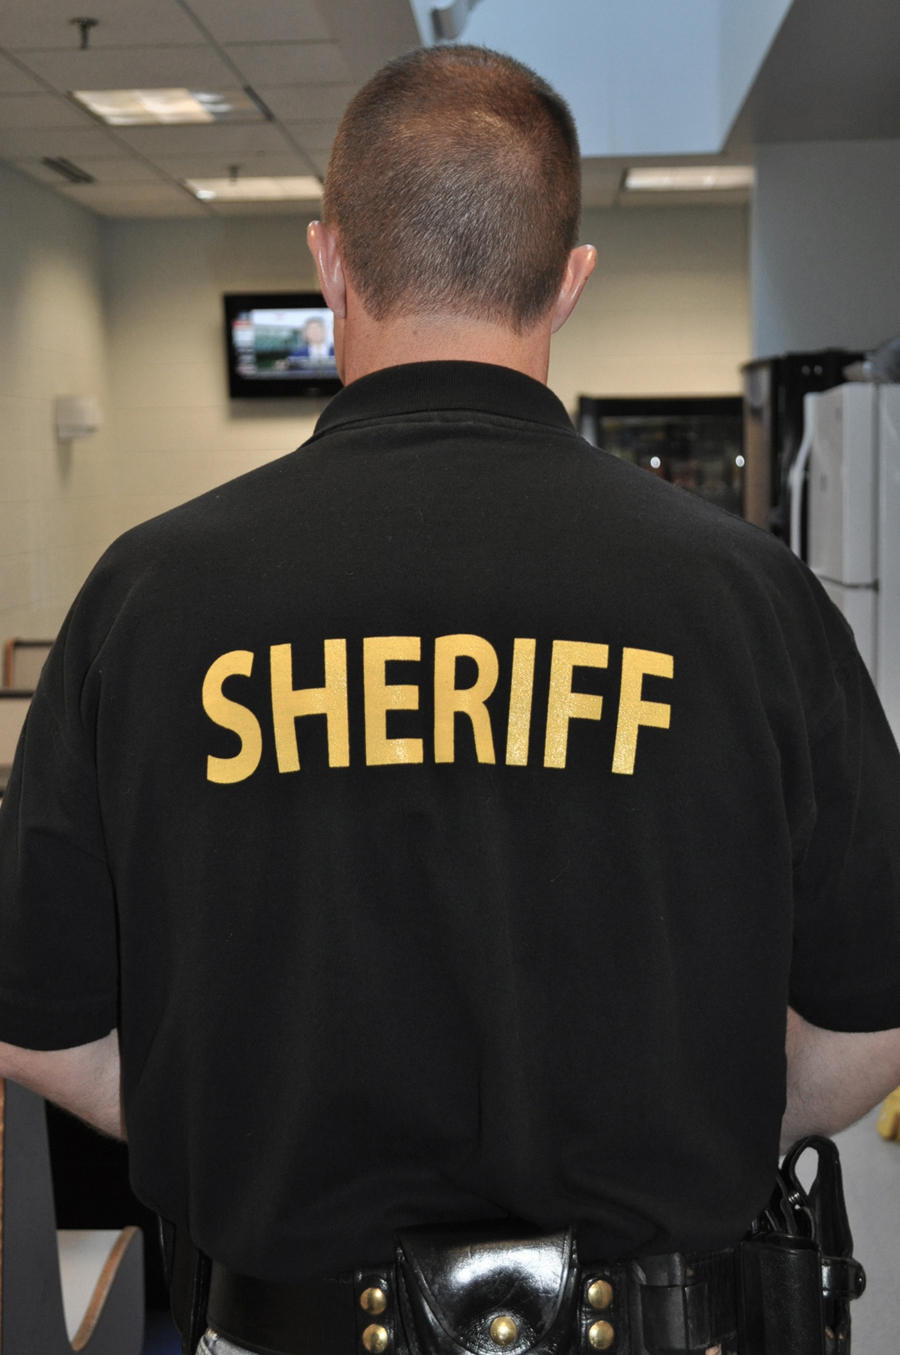 sheriff shirt back